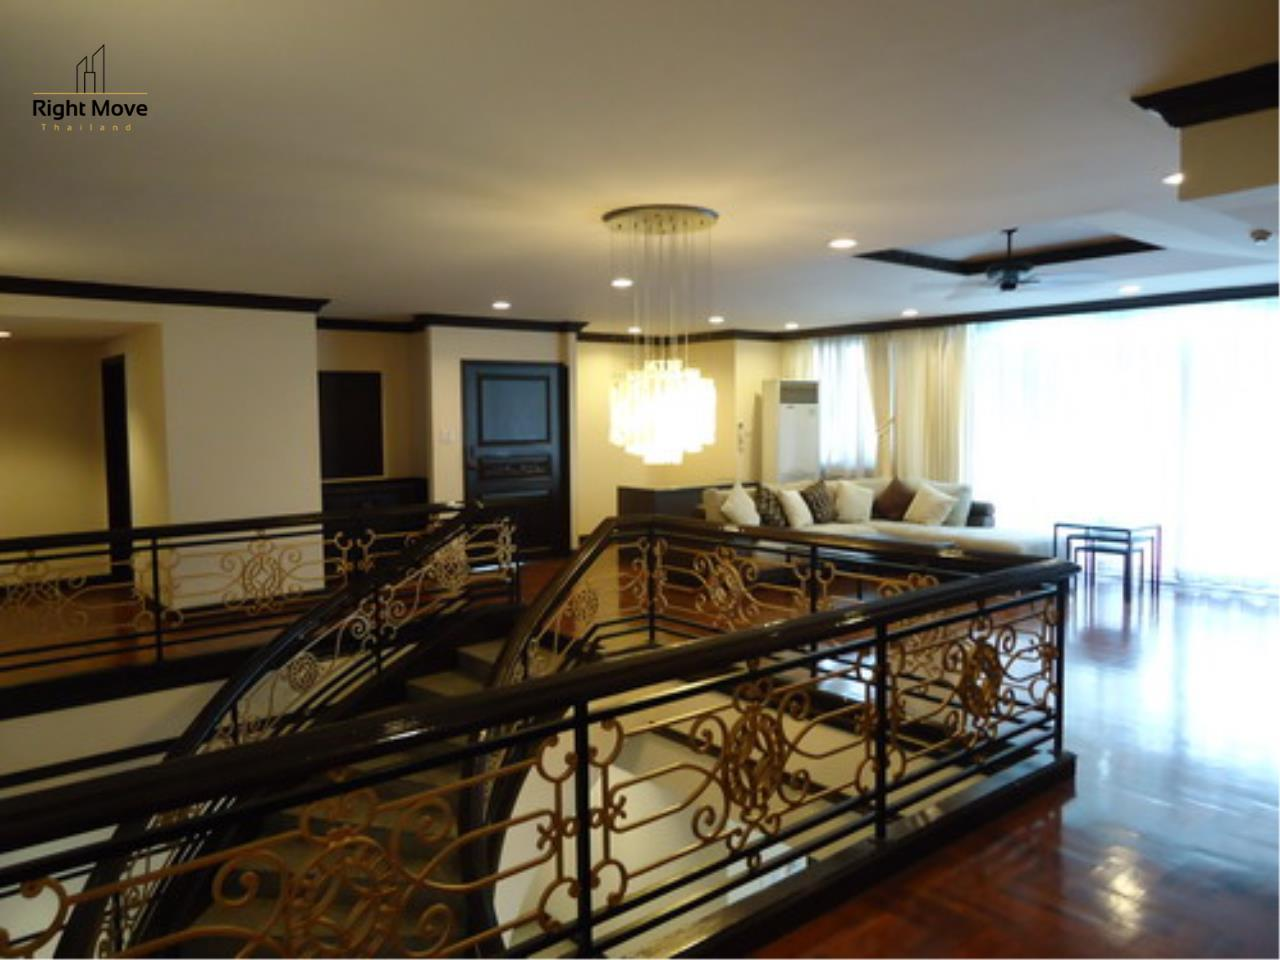 Right Move Thailand Agency's CA3559 Penthouse Duplex For Rent 150,000 THB 4+1 Bedrooms 600 Sqm 2